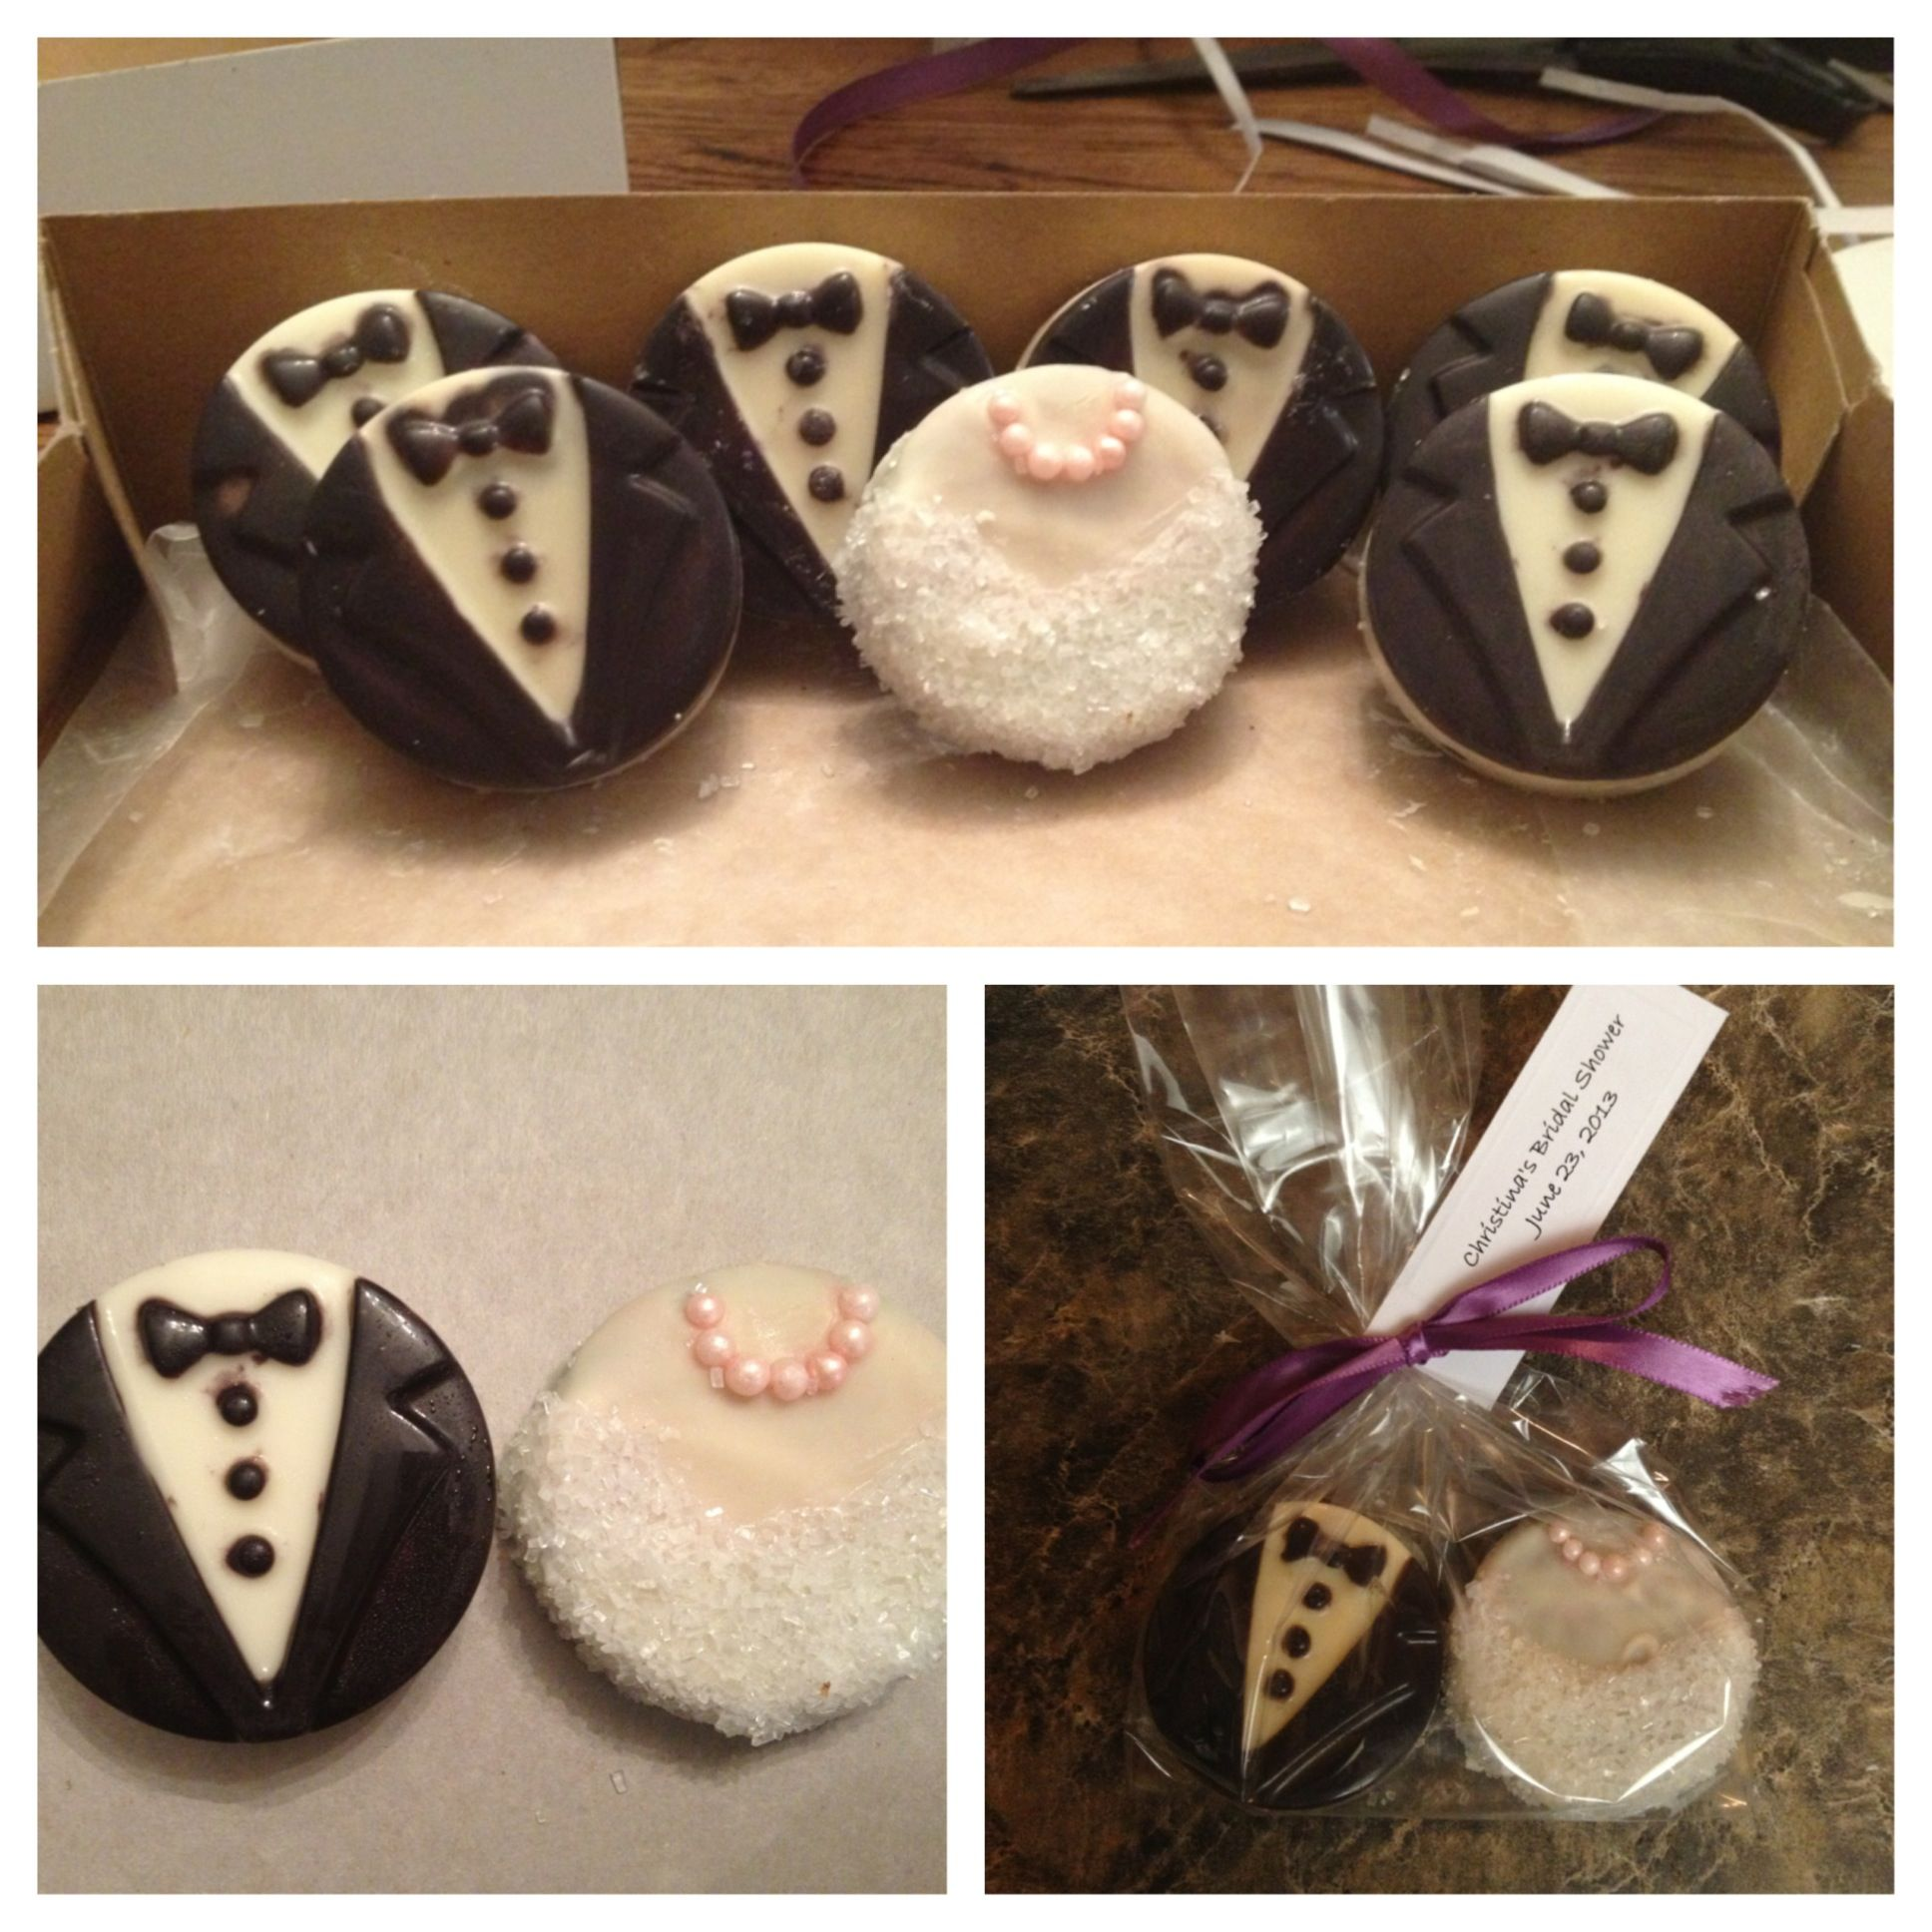 craft ideas for bridal shower favors%0A Wedding shower favors  Bride and groom Oreo cookies  So happy with how  these turned